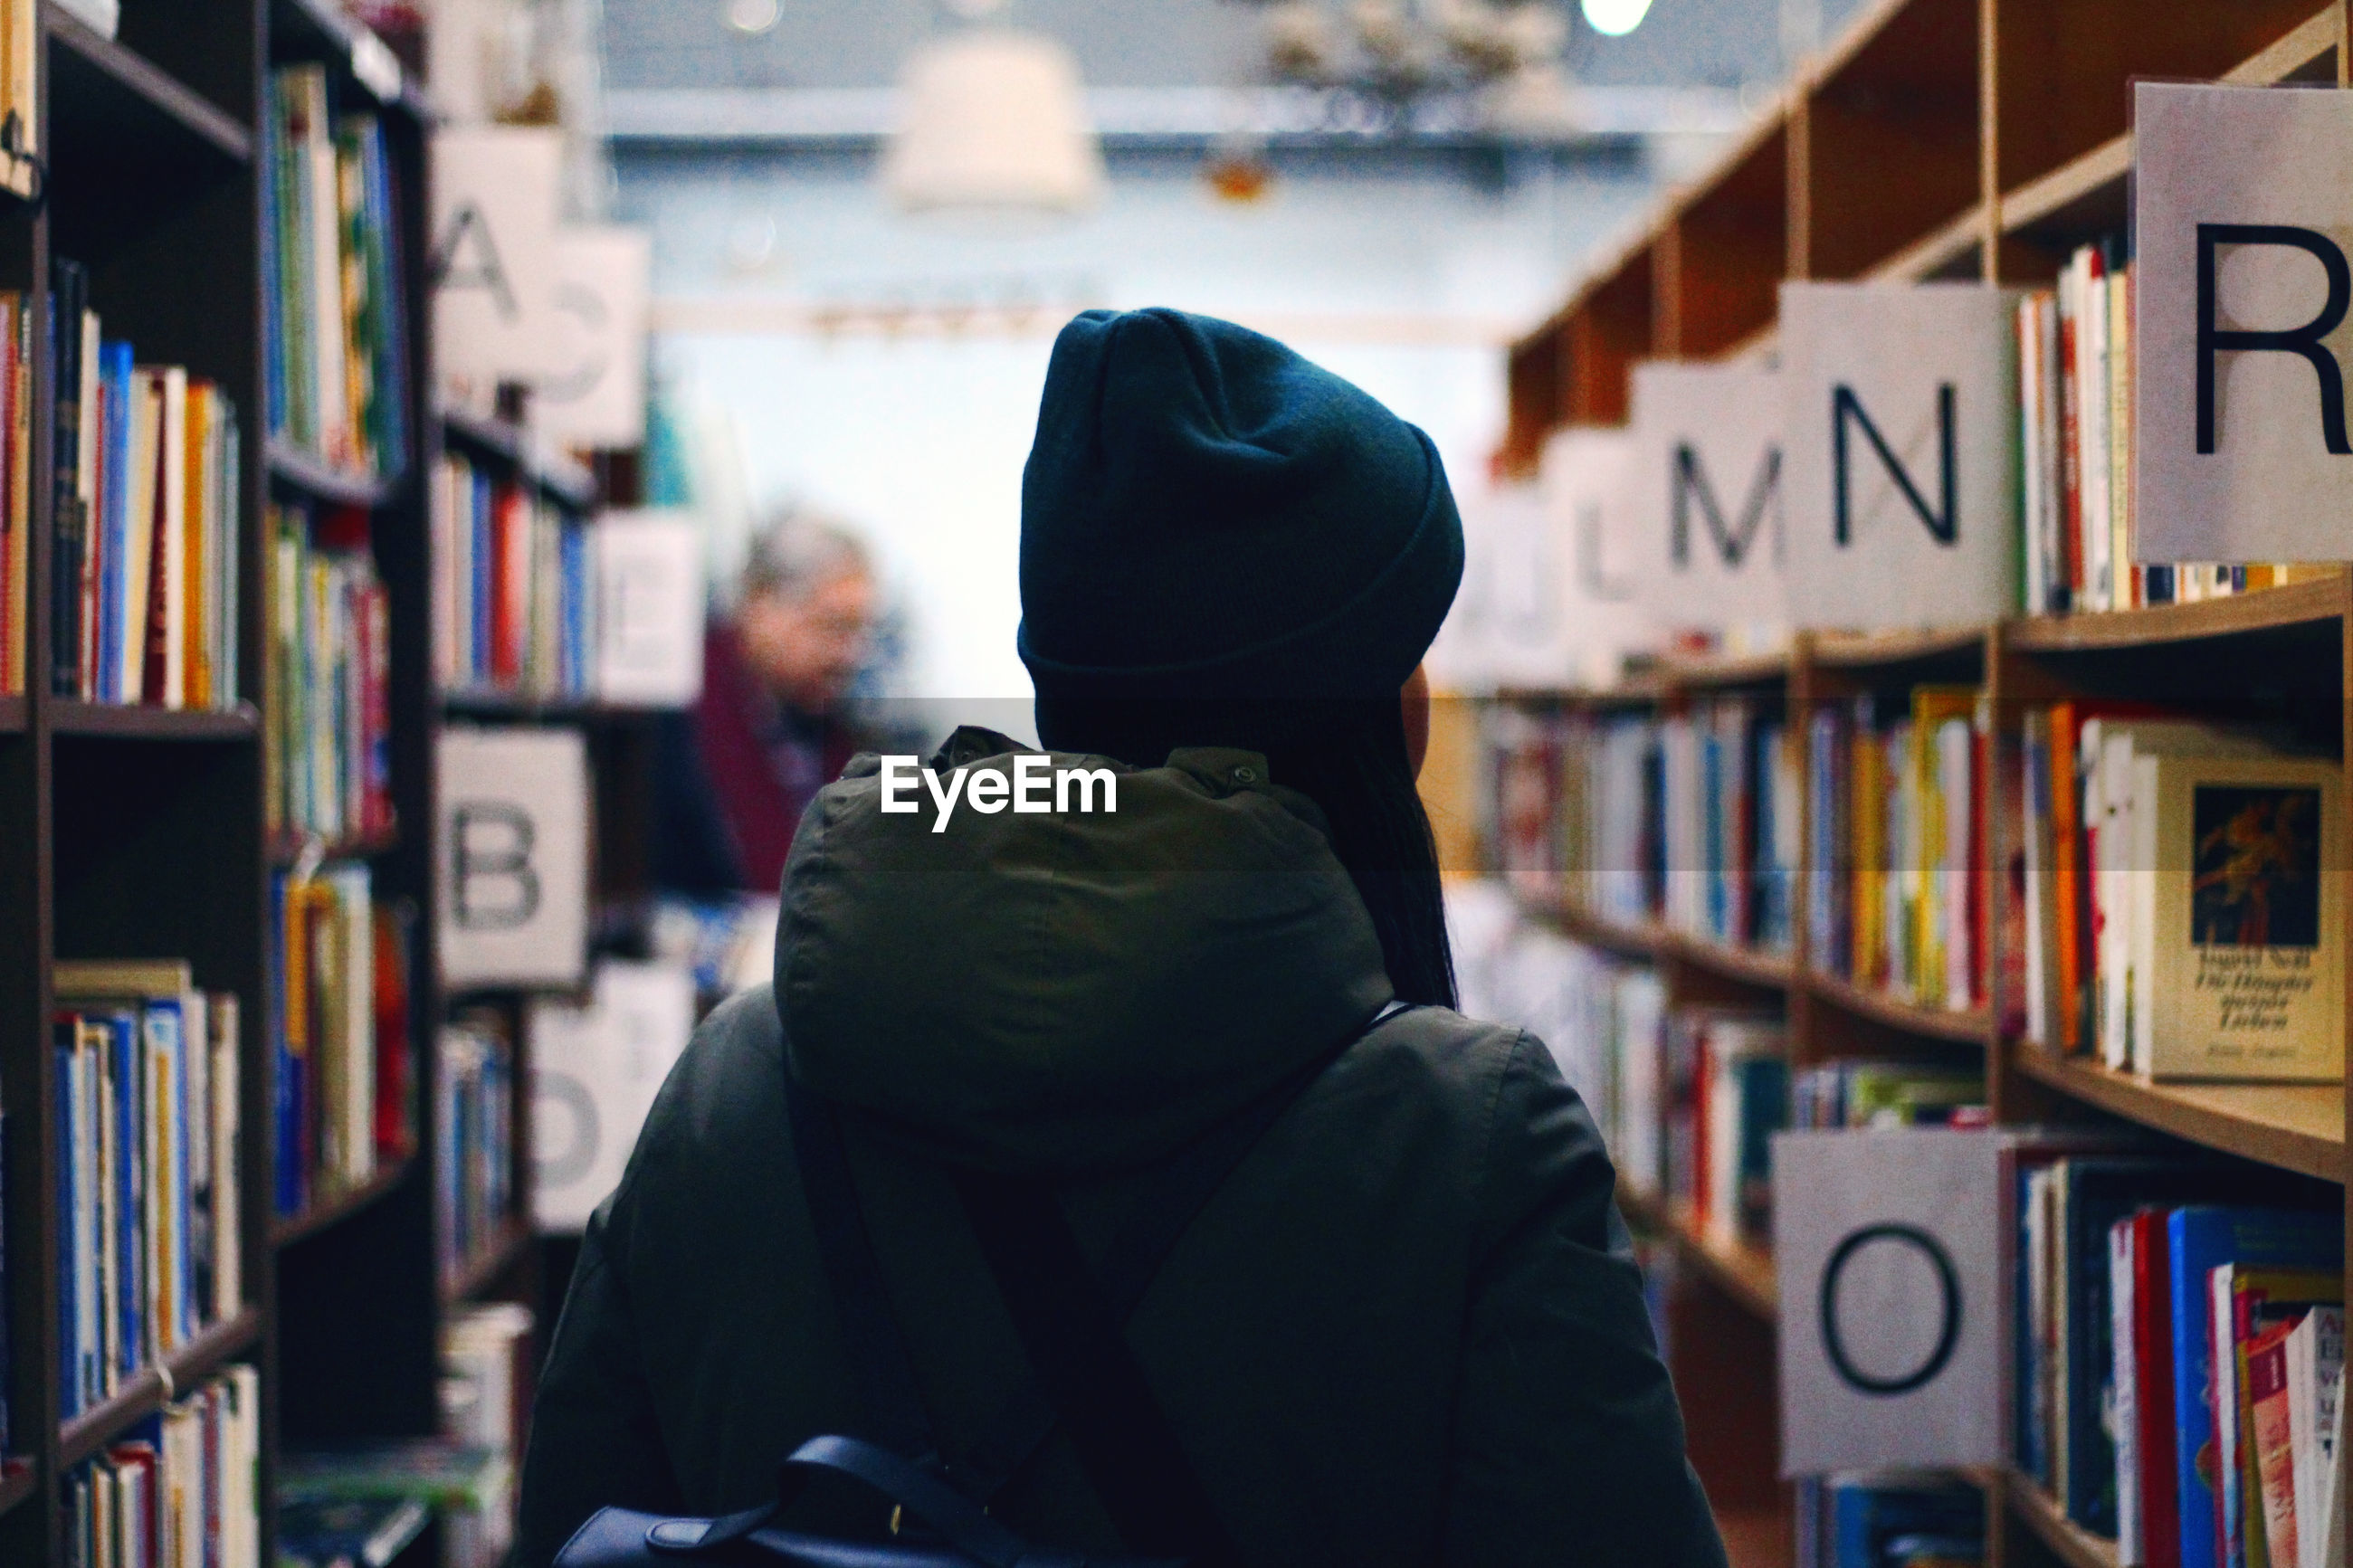 REAR VIEW OF PEOPLE READING BOOK IN SHELF